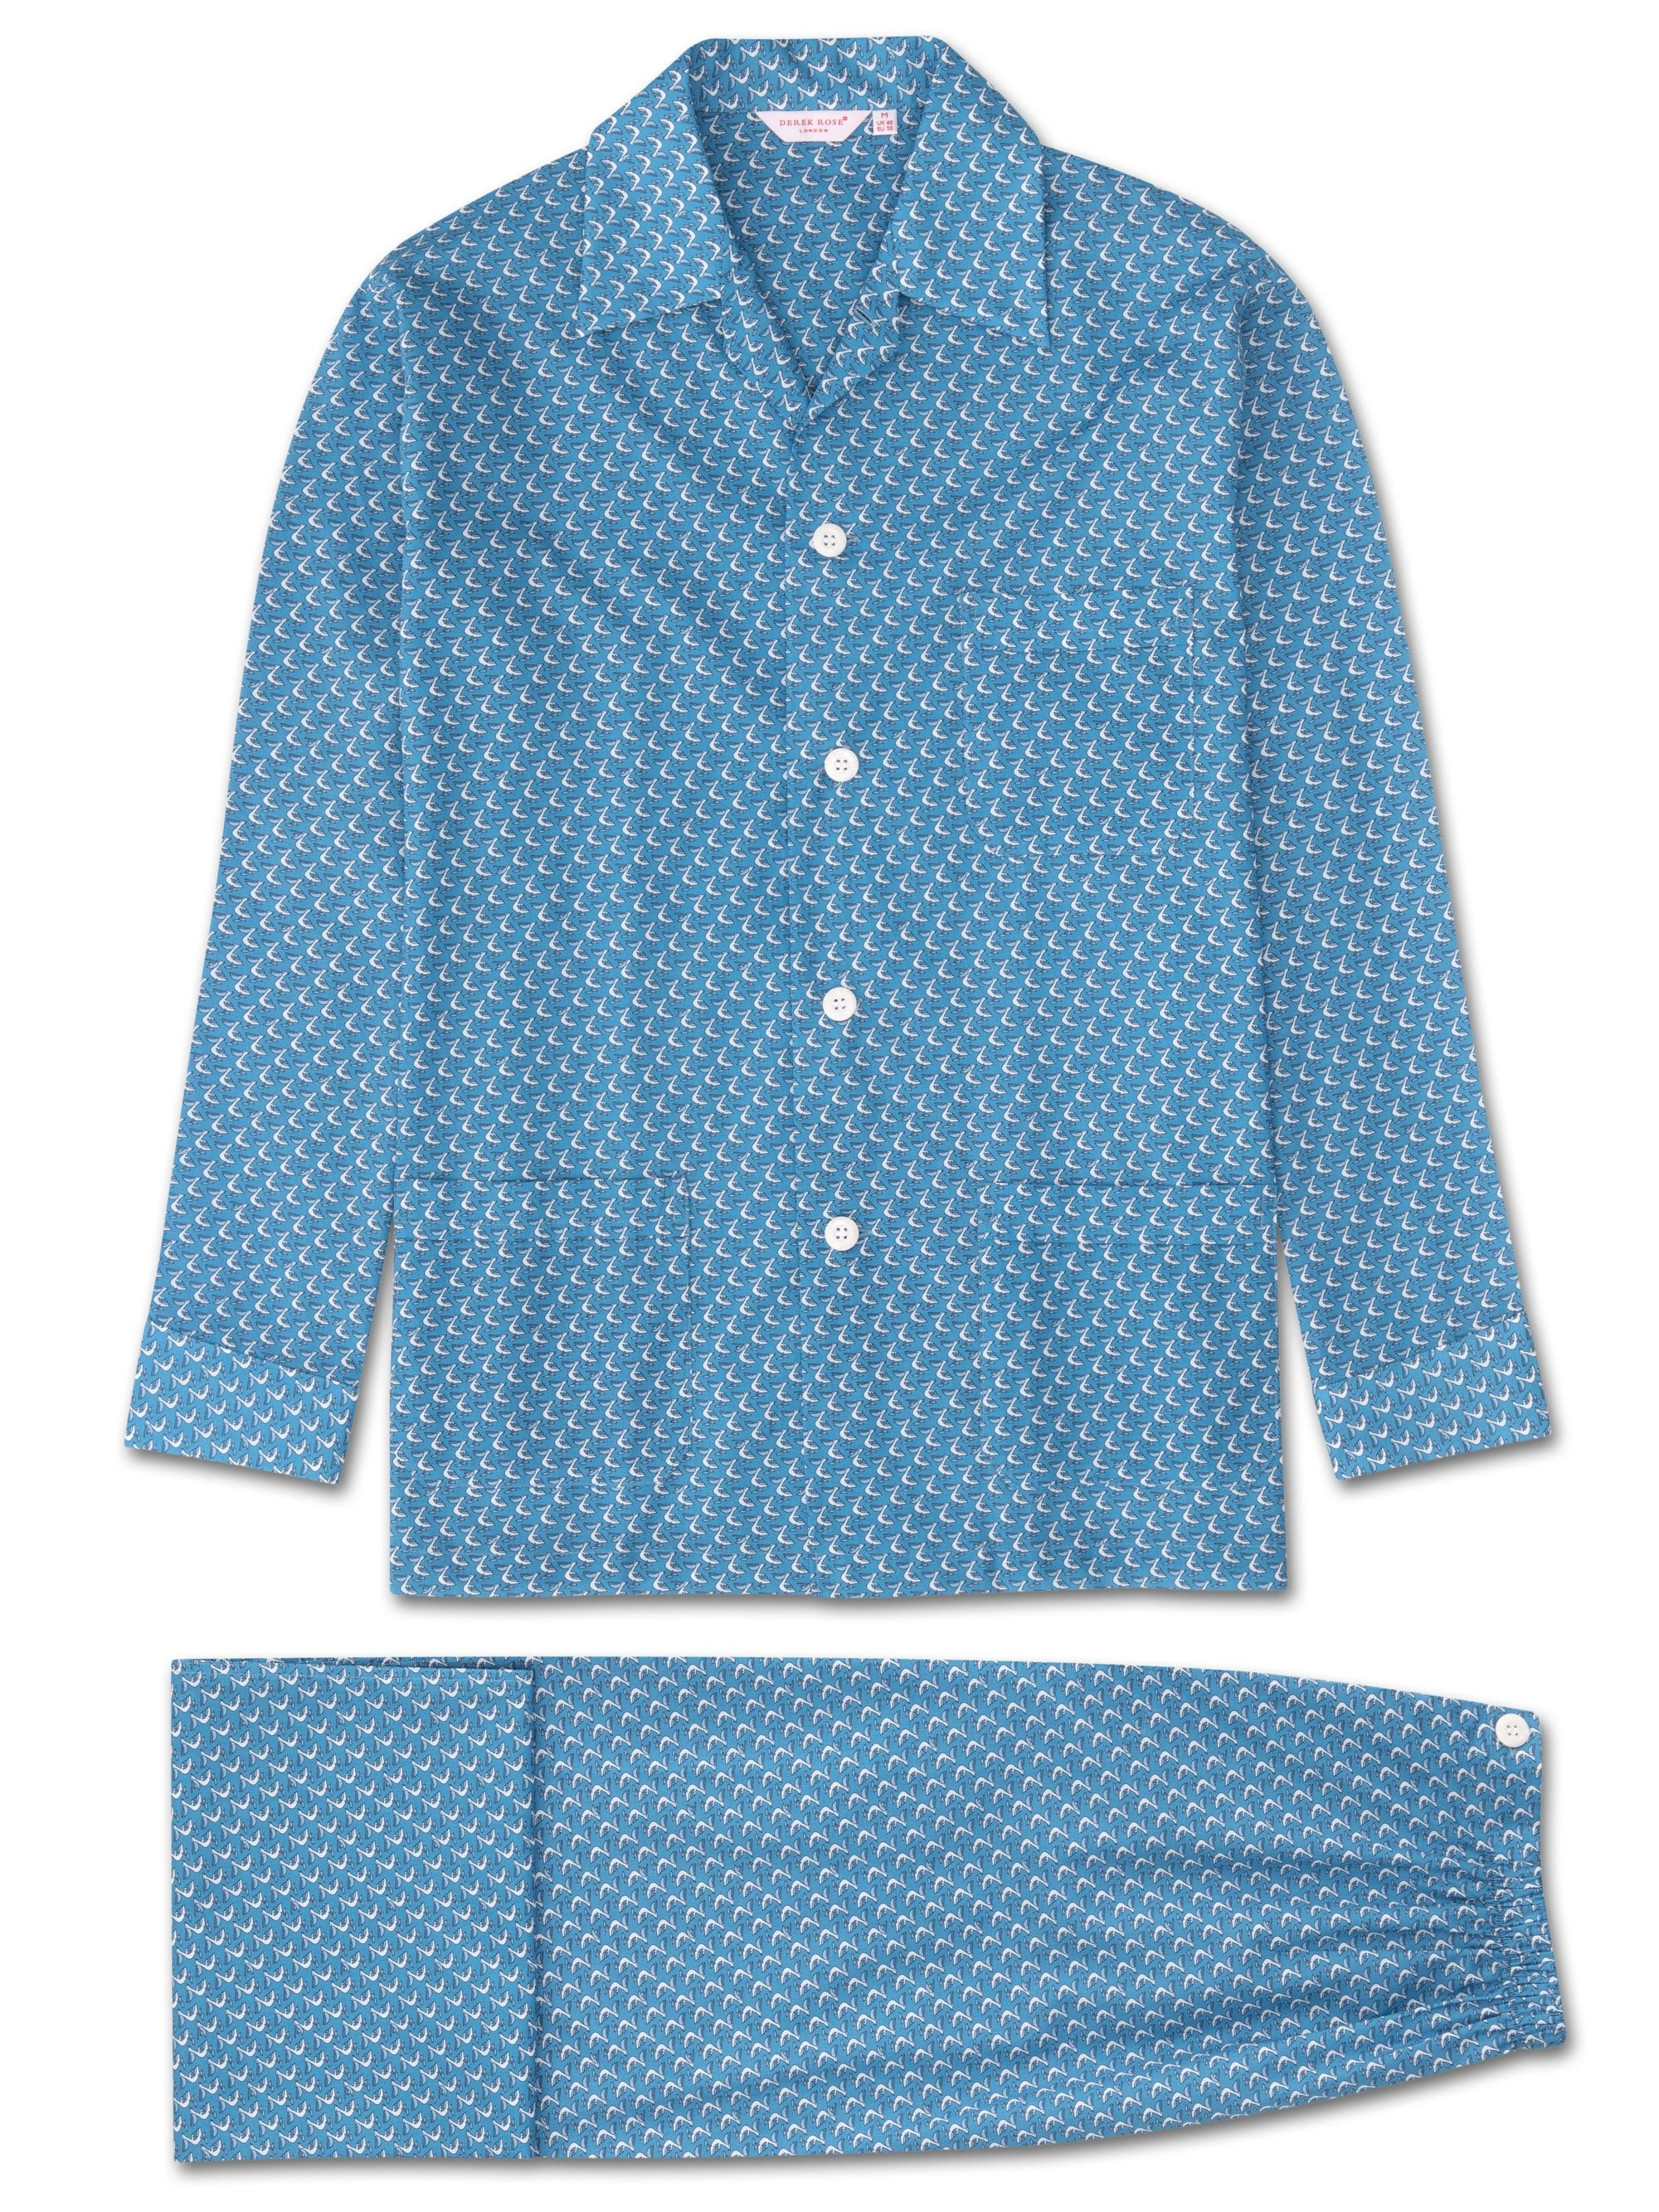 Men's Classic Fit Pyjamas Ledbury 16 Cotton Batiste Blue